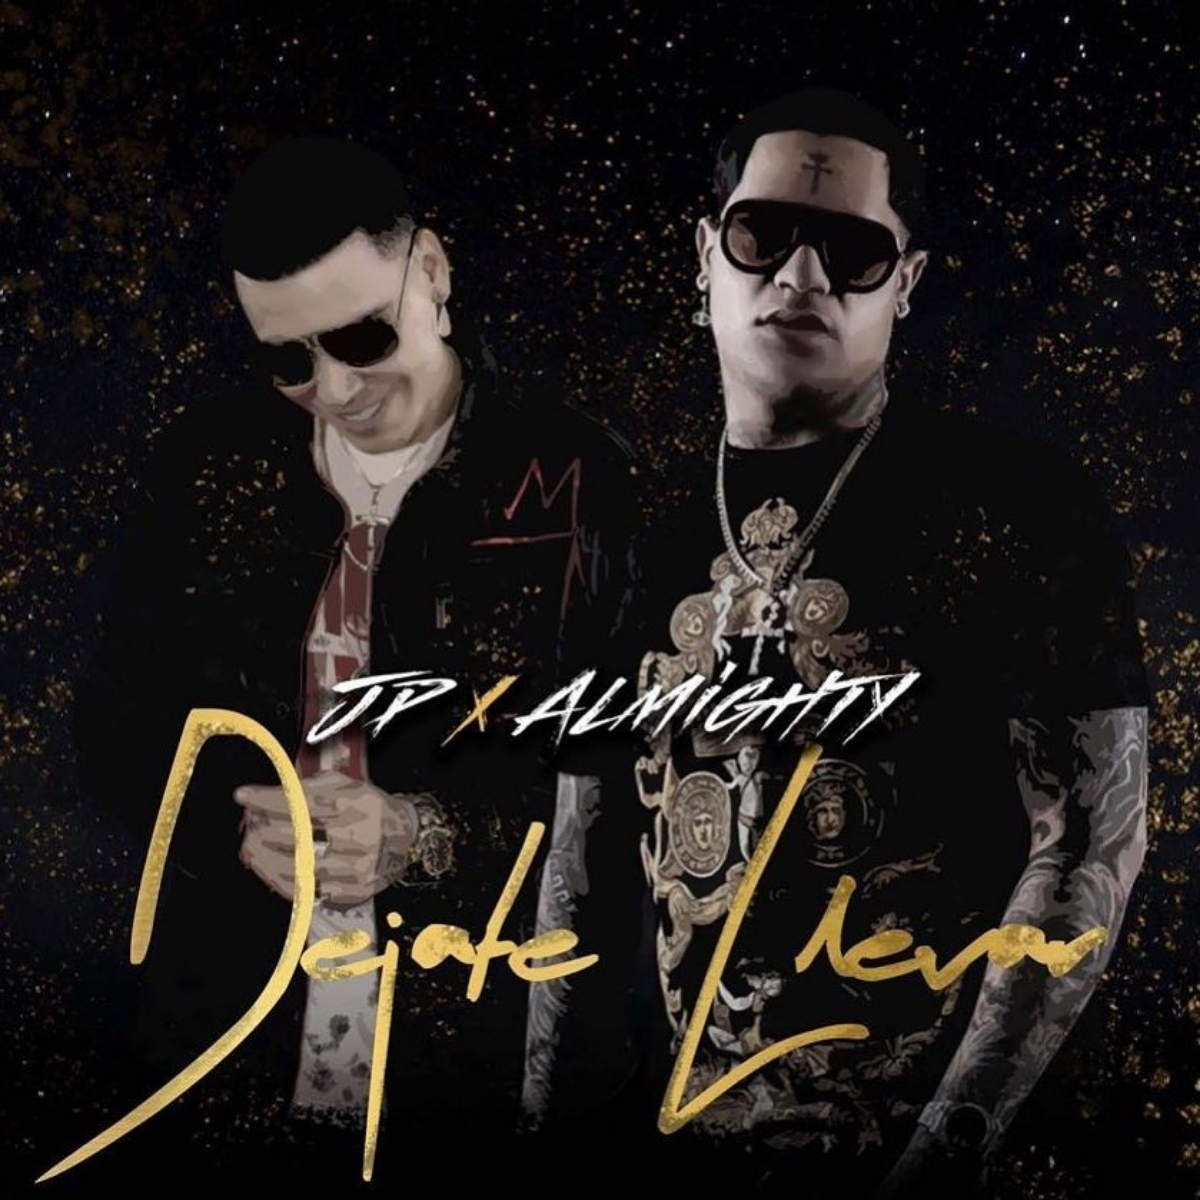 JP Ft. Almighty - Dejate Llevar.mp3